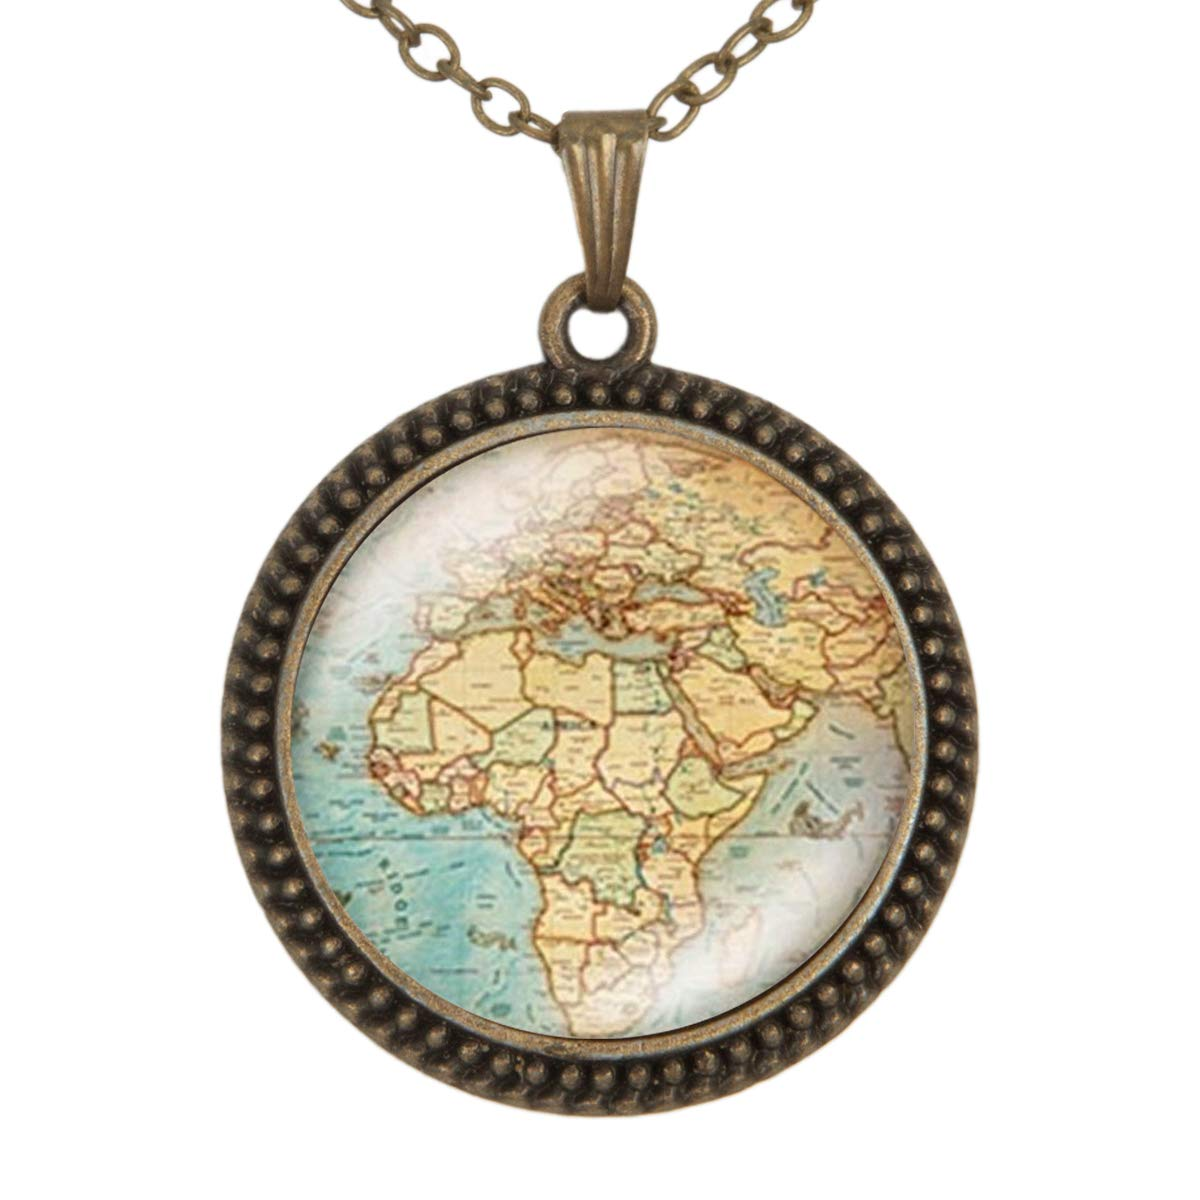 Family Decor Planet Earths World Map Art Pendant Necklace Cabochon Glass Vintage Bronze Chain Necklace Jewelry Handmade